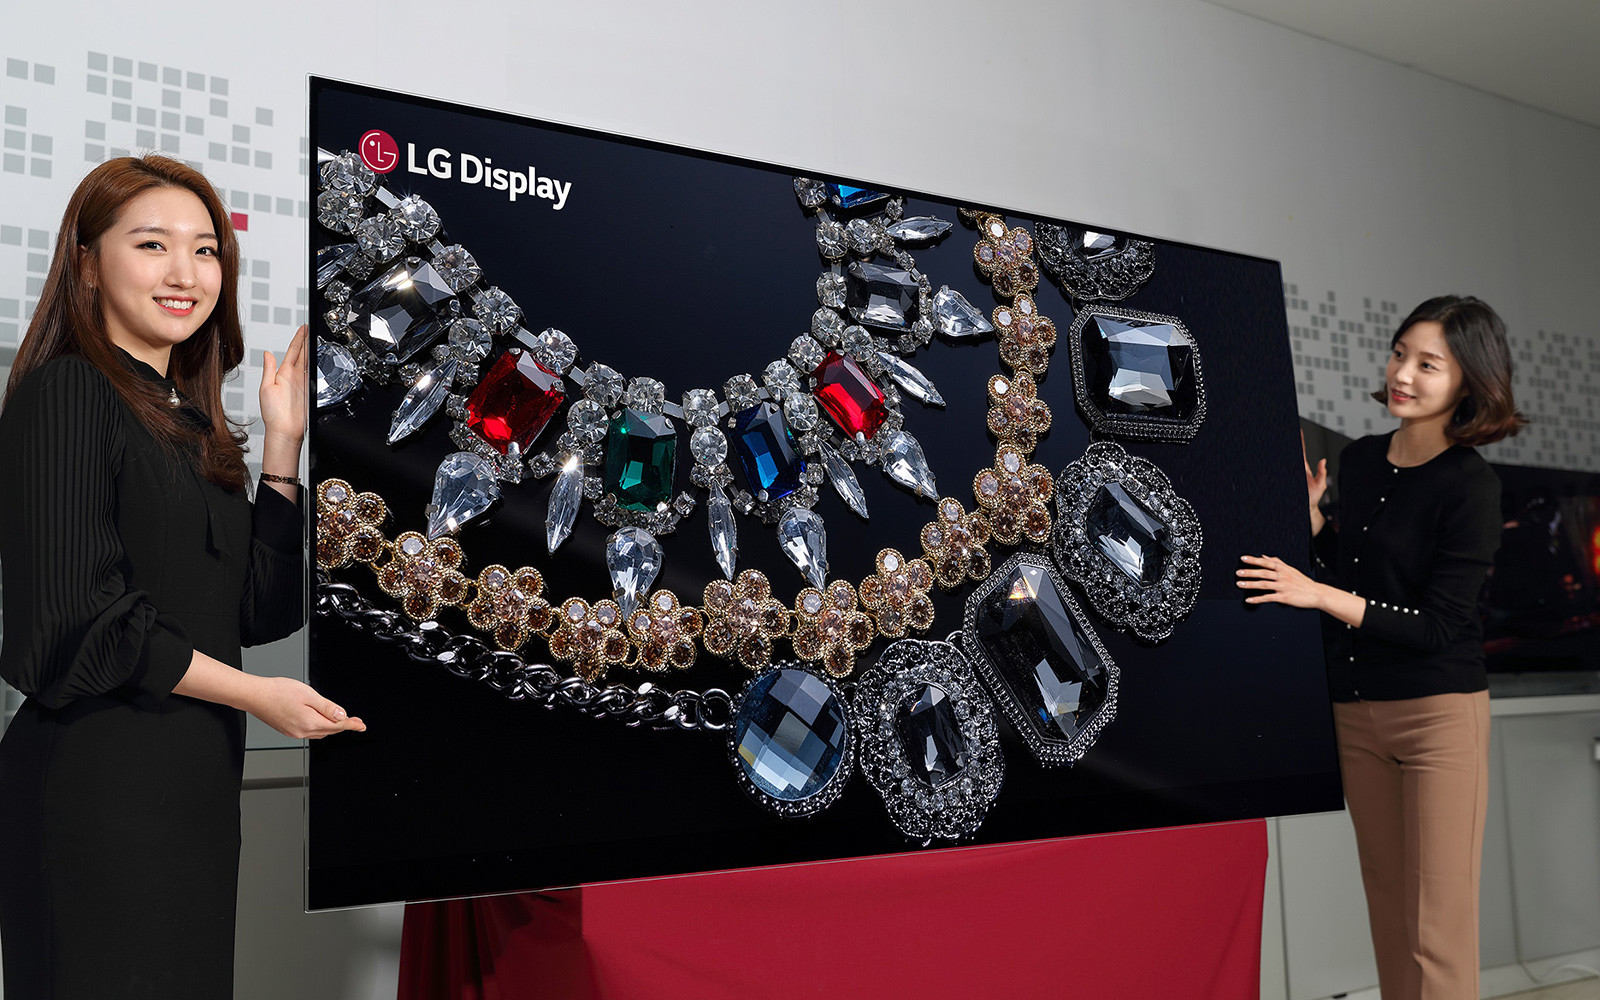 LG Showcases The World's Largest (88-inch) & Highest Resolution (8K) OLED Display